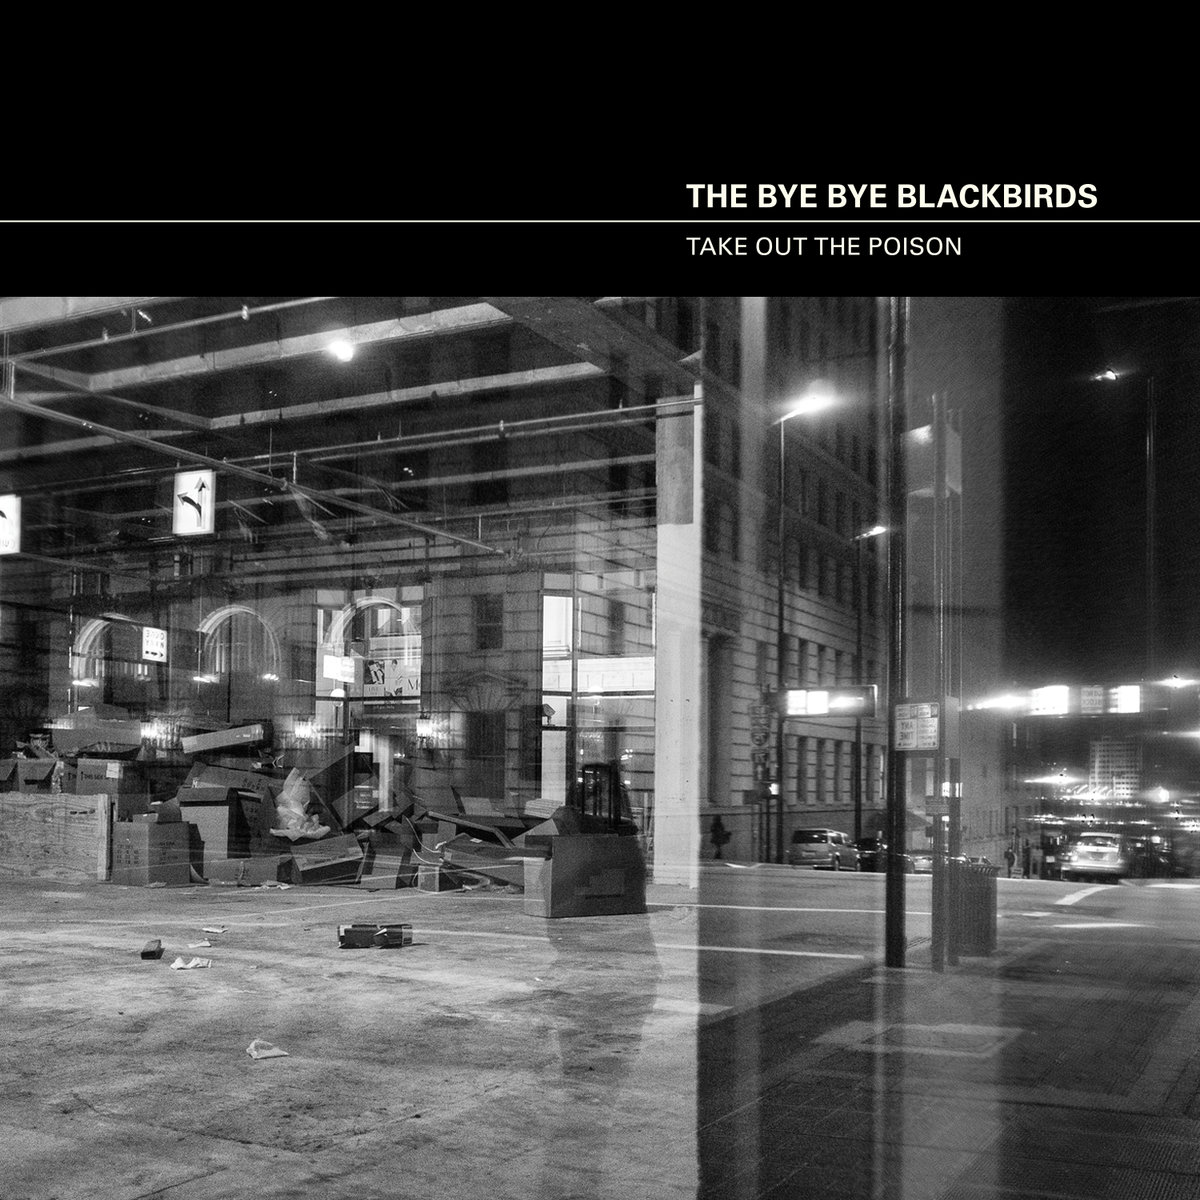 The Bye Bye Blackbirds - Take Out The Poison